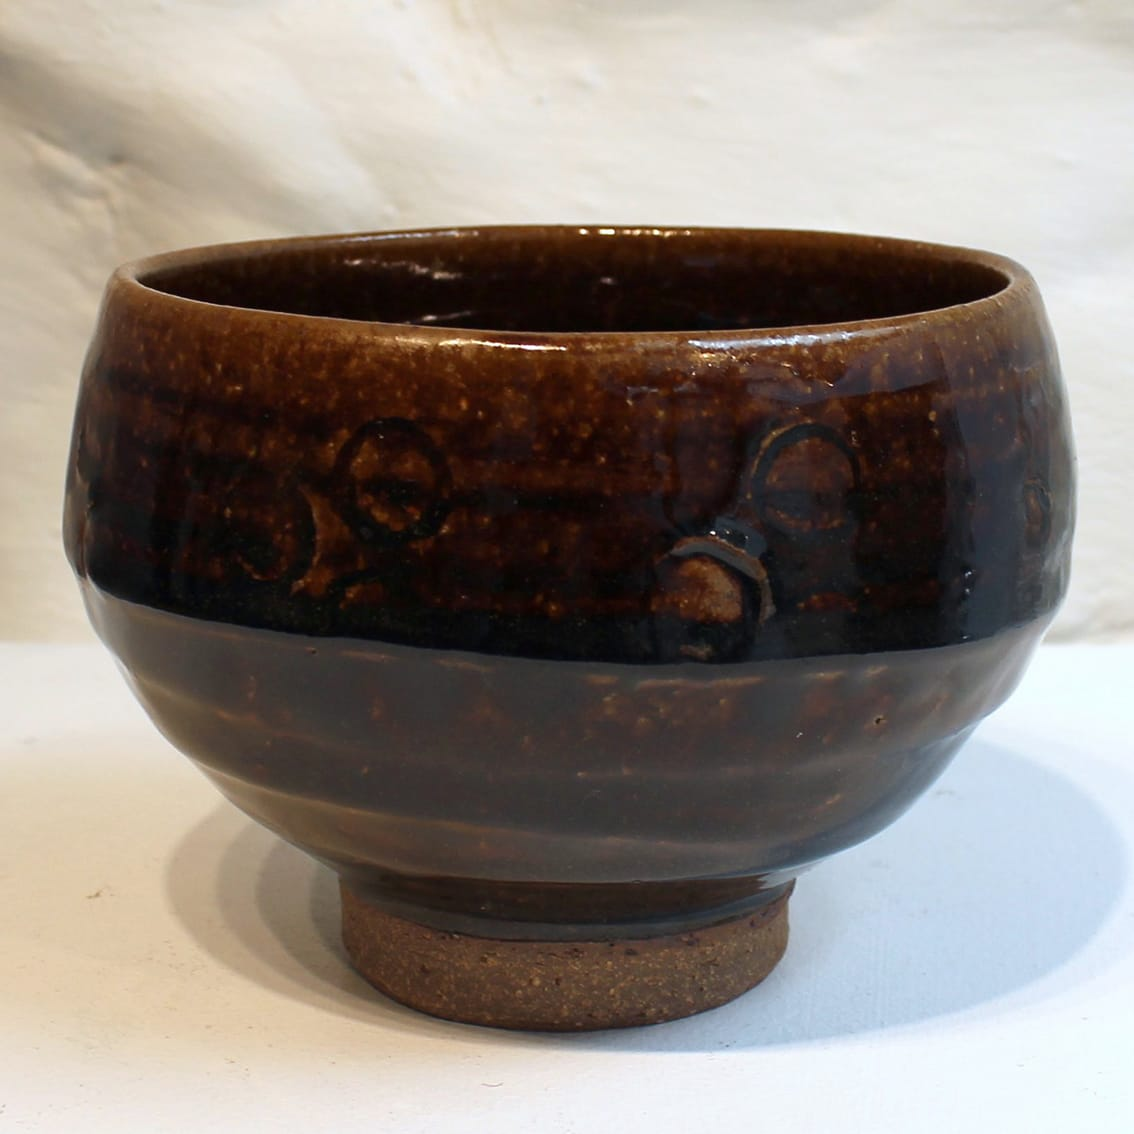 """<span class=""""link fancybox-details-link""""><a href=""""/artists/200-matthew-tyas/works/5454-matthew-tyas-toffee-chawan-bowl-2018/"""">View Detail Page</a></span><div class=""""artist""""><strong>Matthew Tyas</strong></div> <div class=""""title""""><em>Toffee Chawan Bowl</em>, 2018</div> <div class=""""signed_and_dated"""">stamped by the artist</div> <div class=""""medium"""">glazed thrown stoneware</div><div class=""""copyright_line"""">Copyright The Artist</div>"""